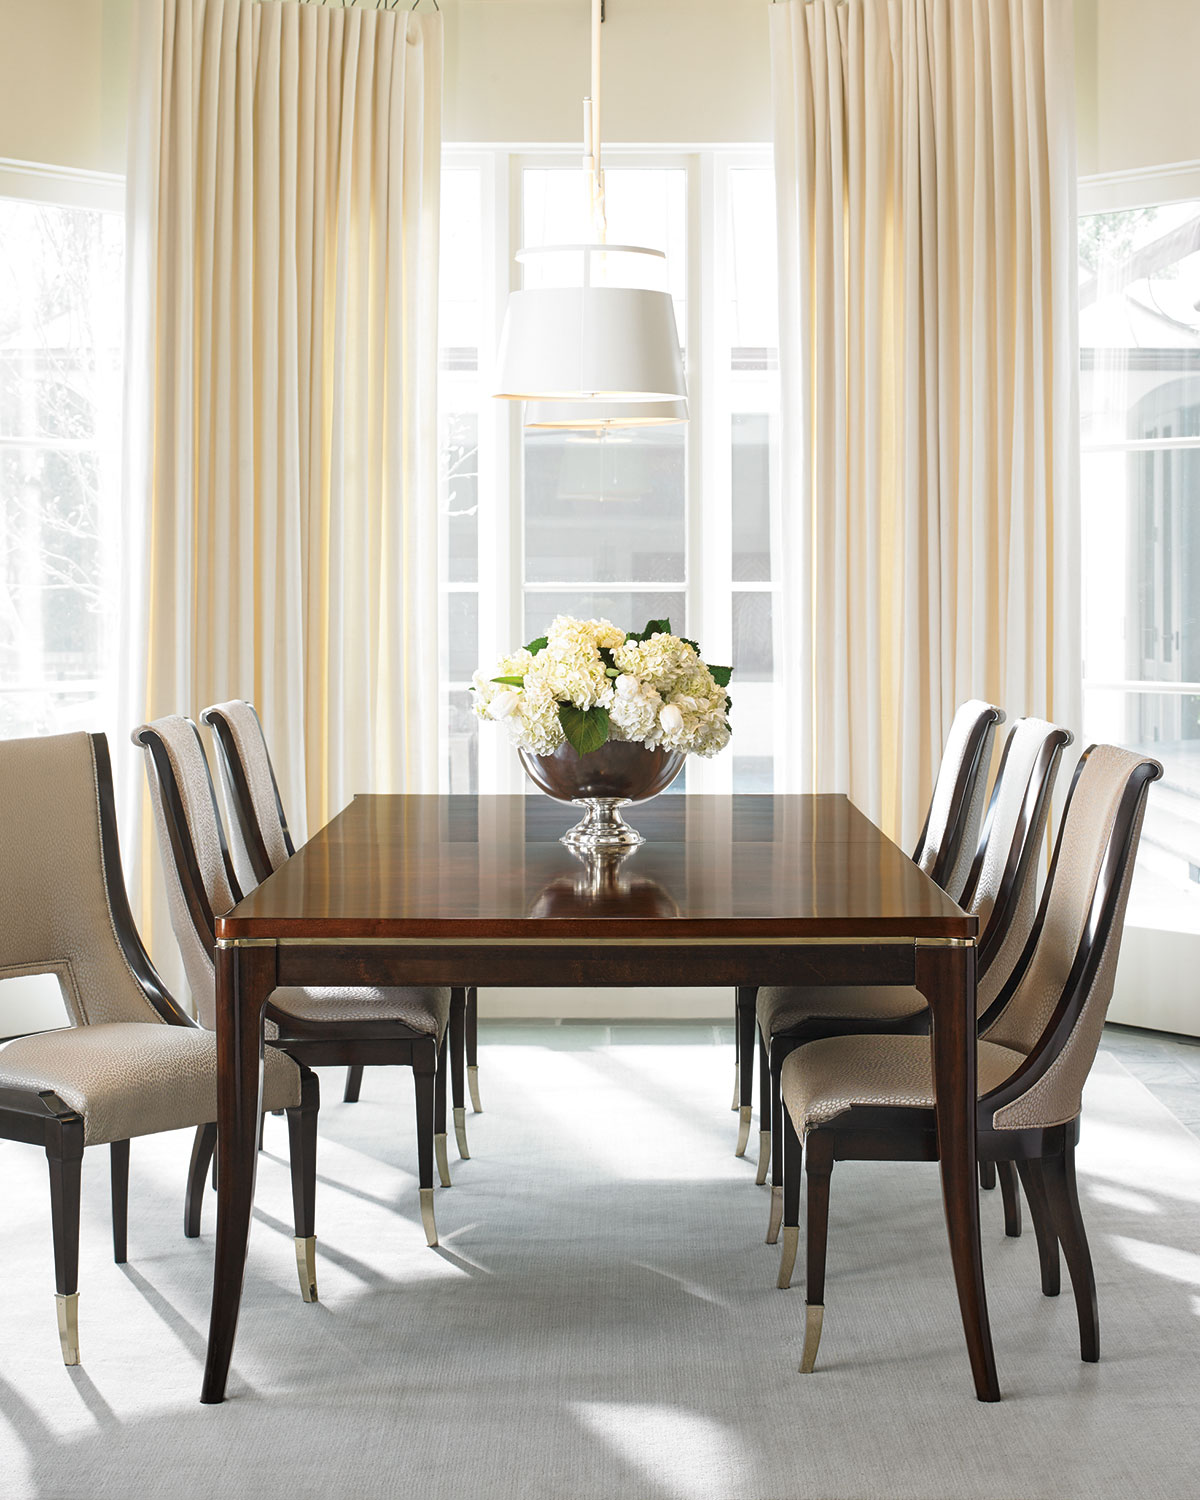 Caracole Open Invitation Dining Table With Two Leaves